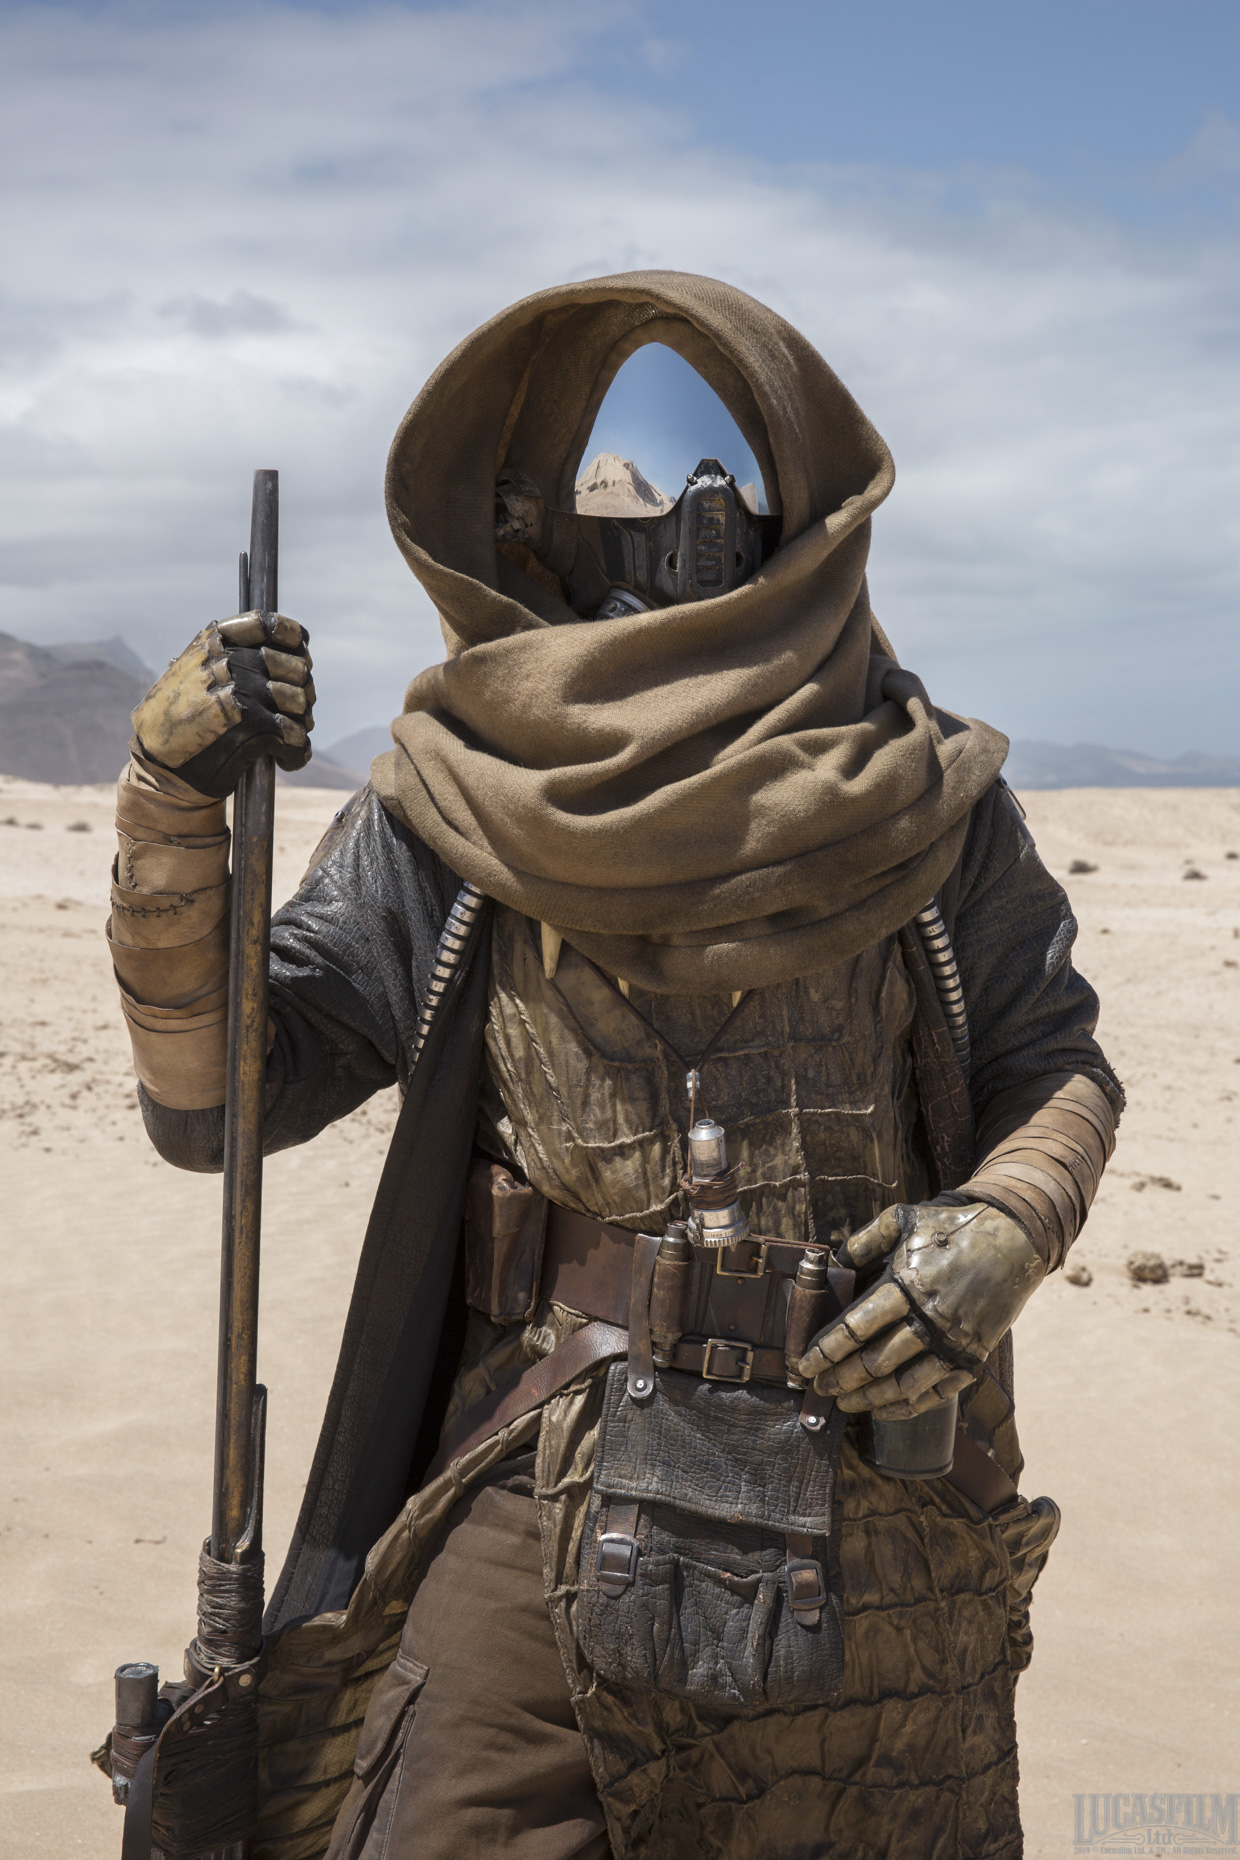 Solo, Star Wars, Enfys Nest Gang, John Wilson, Stills, Still, Unit, Photographer